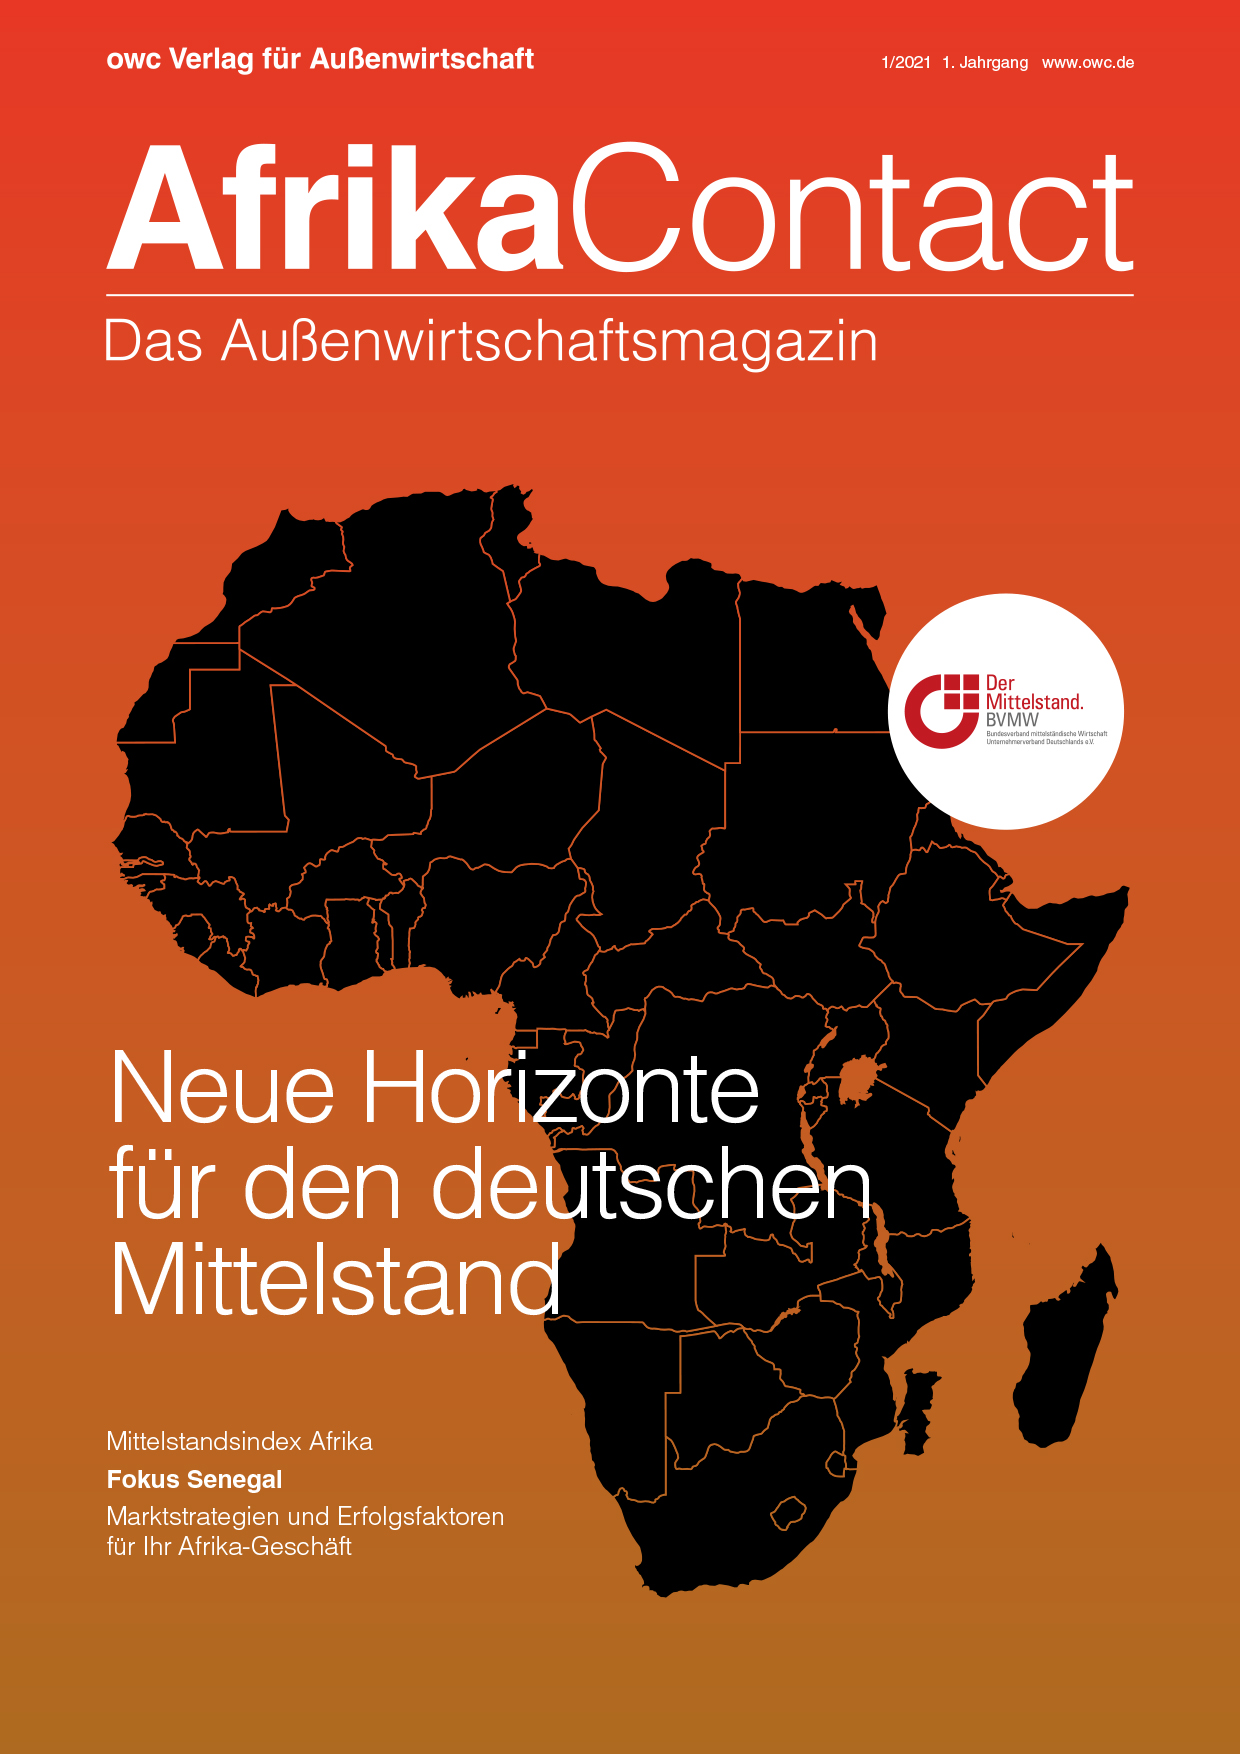 https://owc.de/wp-content/uploads/2021/04/AfrikaContact_1-2021_cover.jpg